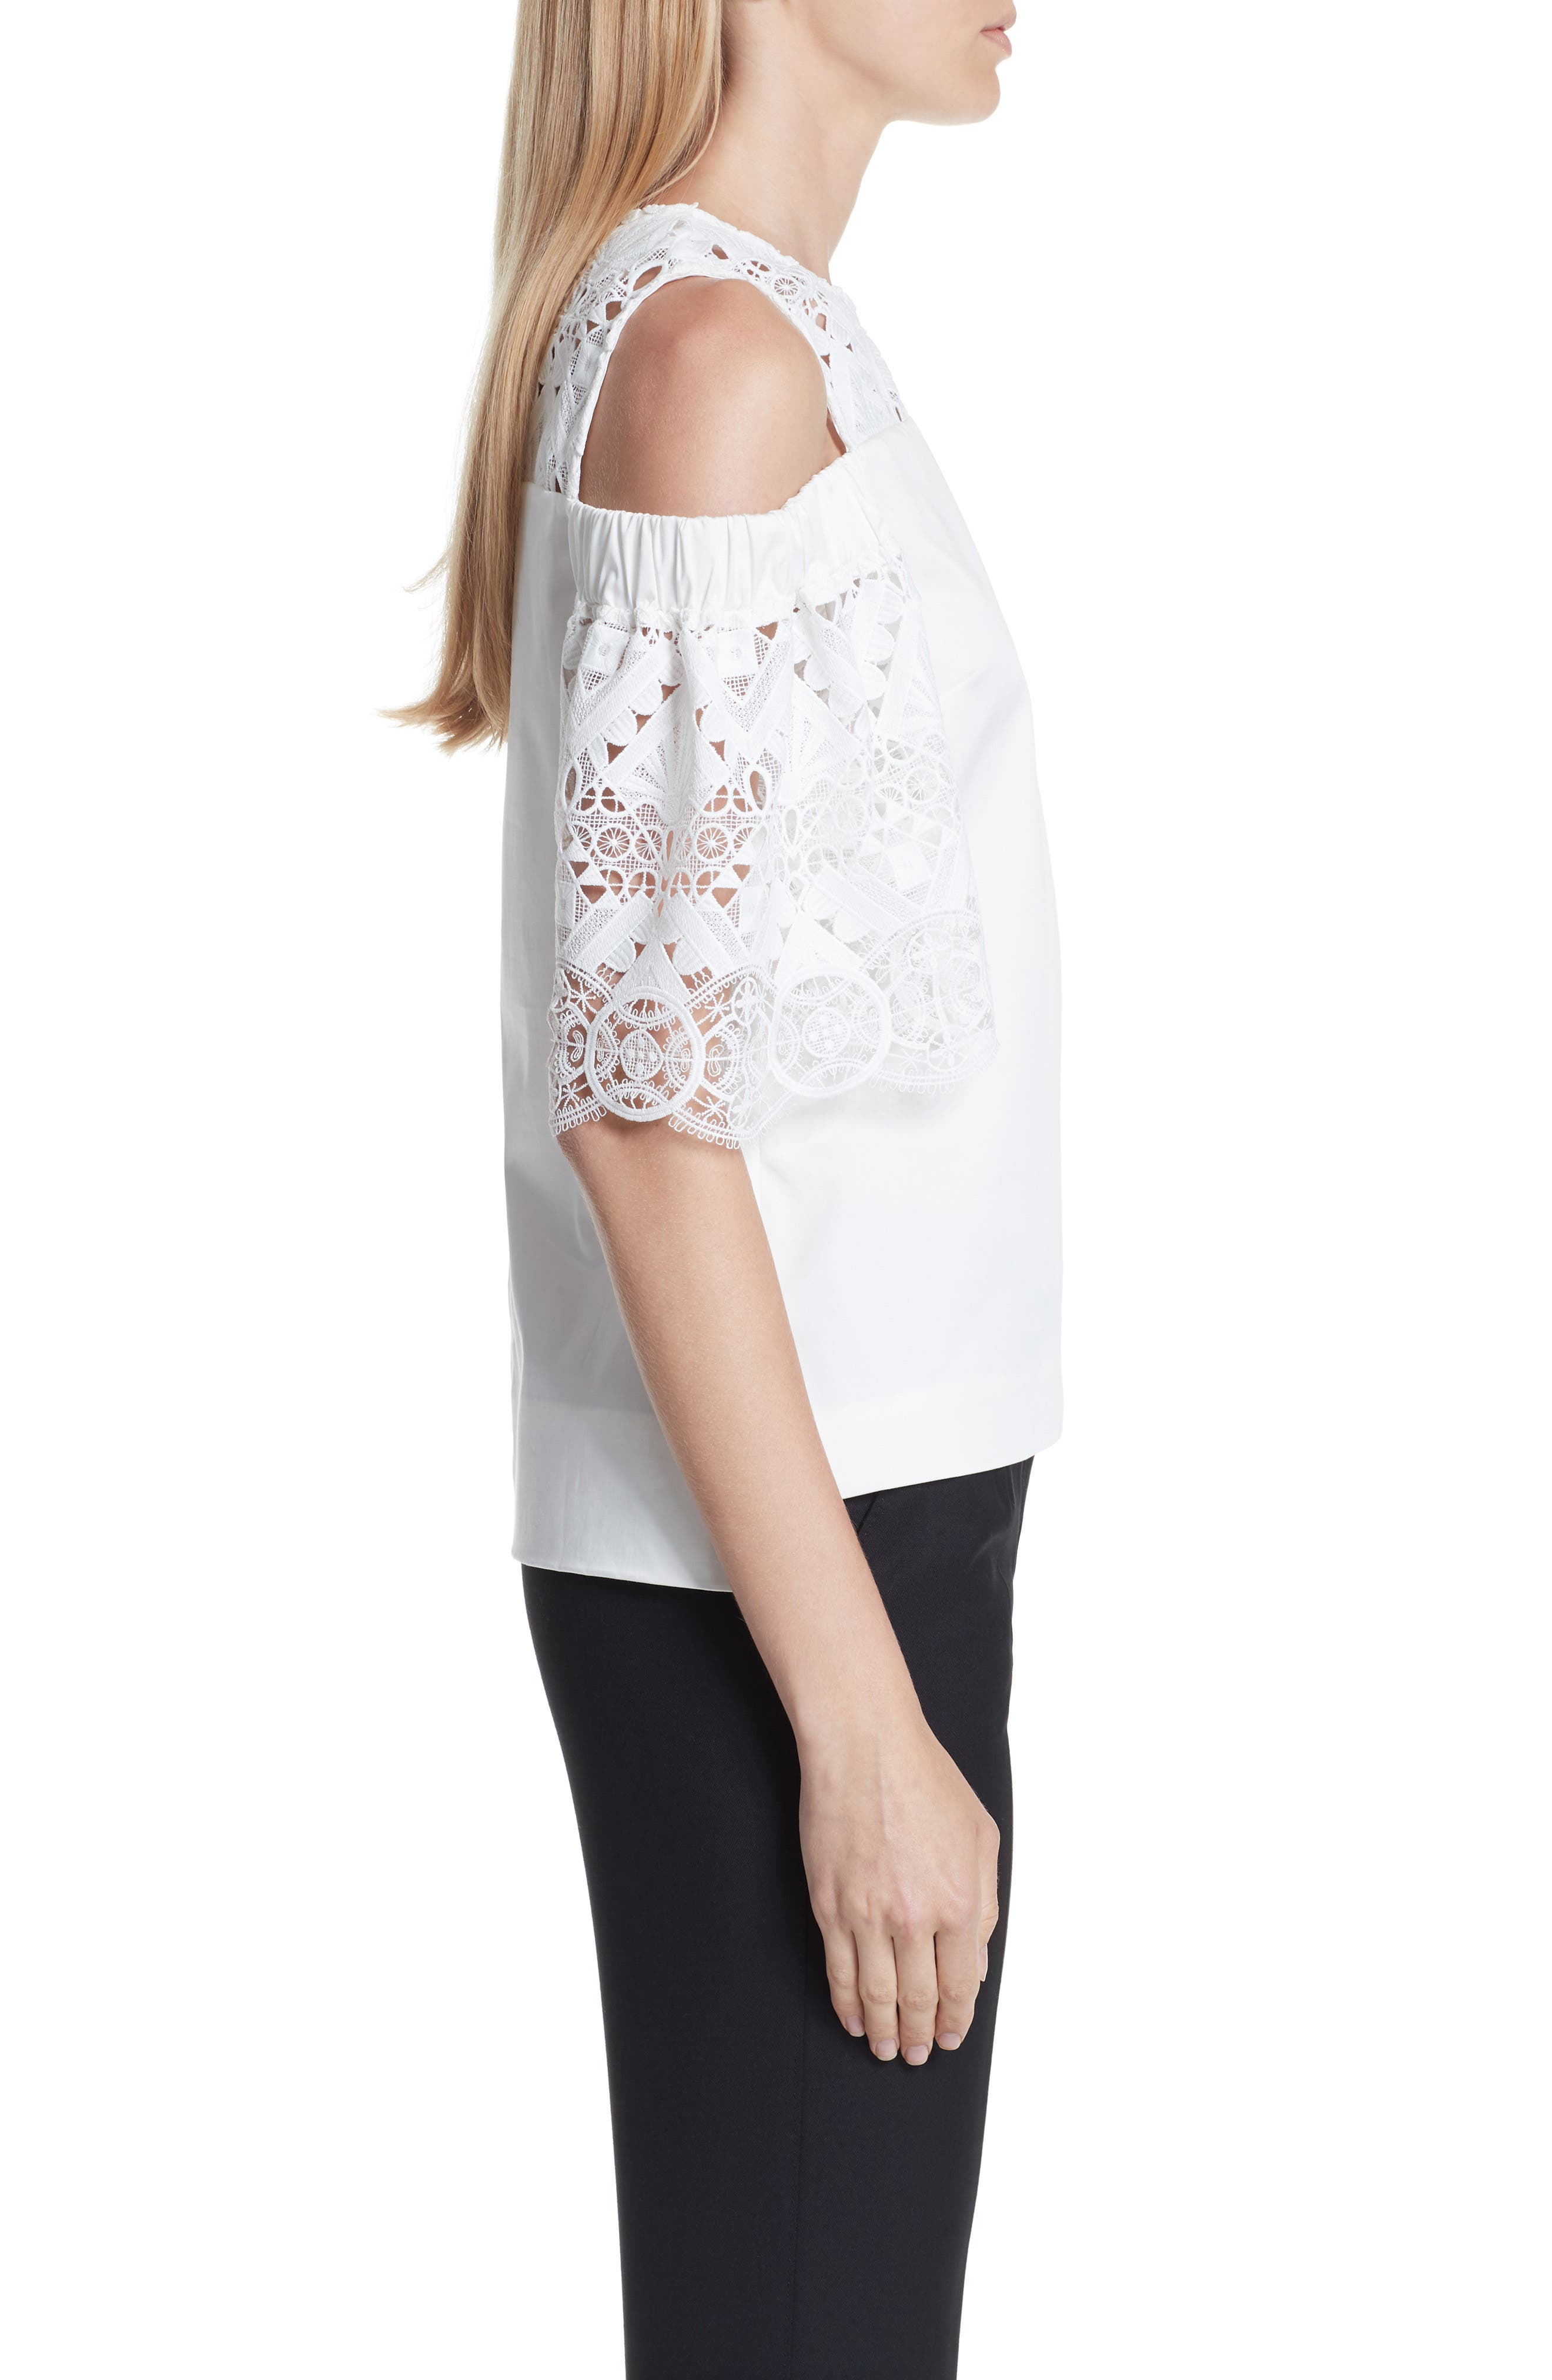 Taluah Mixed Lace Cold Shoulder Blouse,                             Alternate thumbnail 3, color,                             White